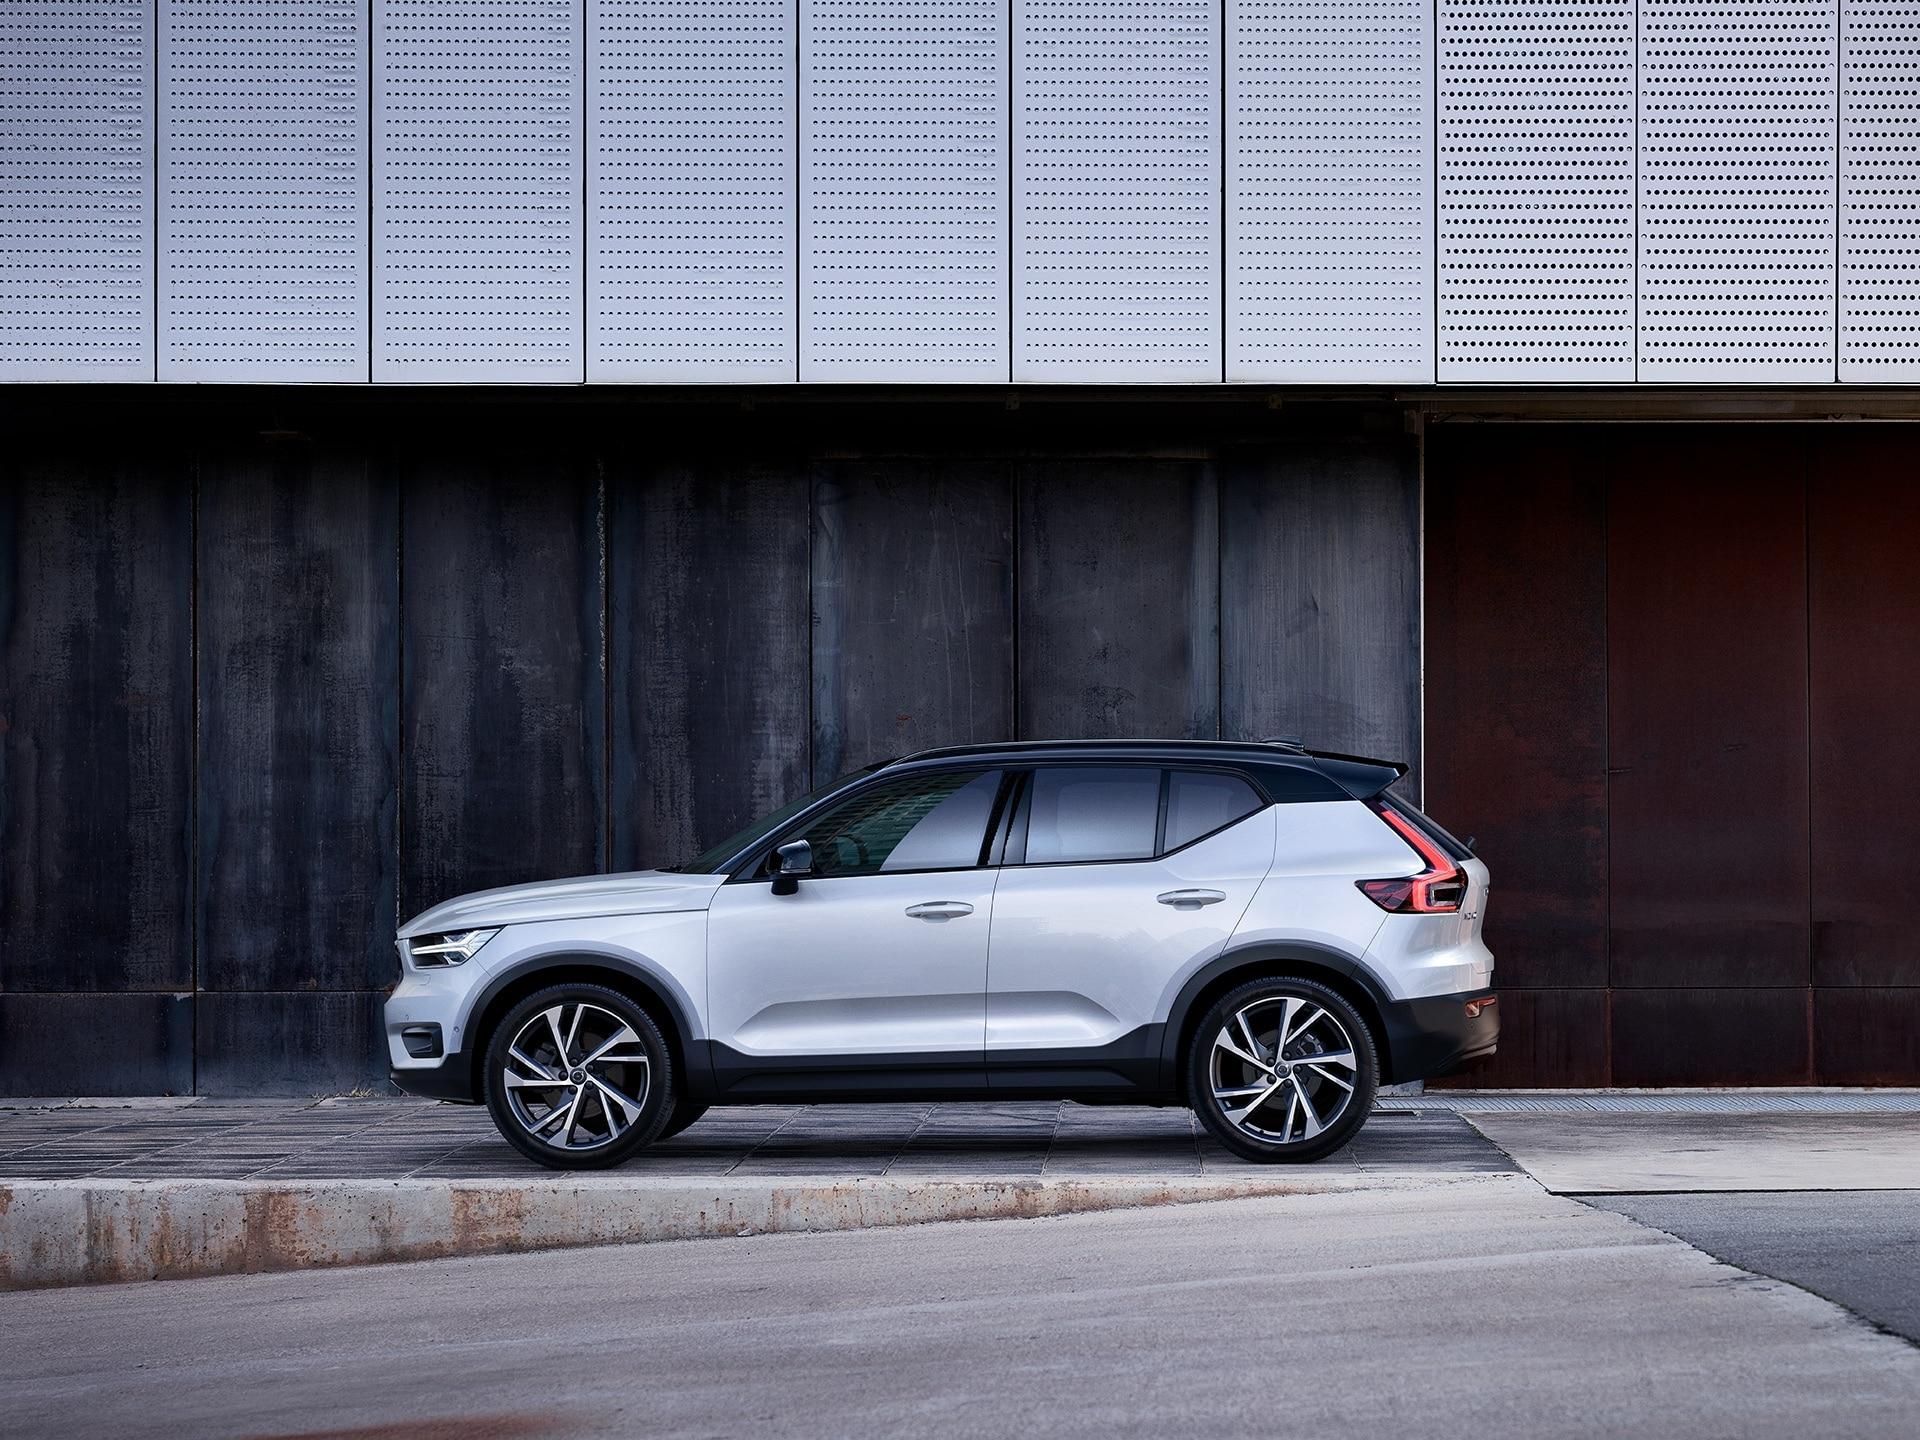 A white Volvo XC40 parked outside a building.